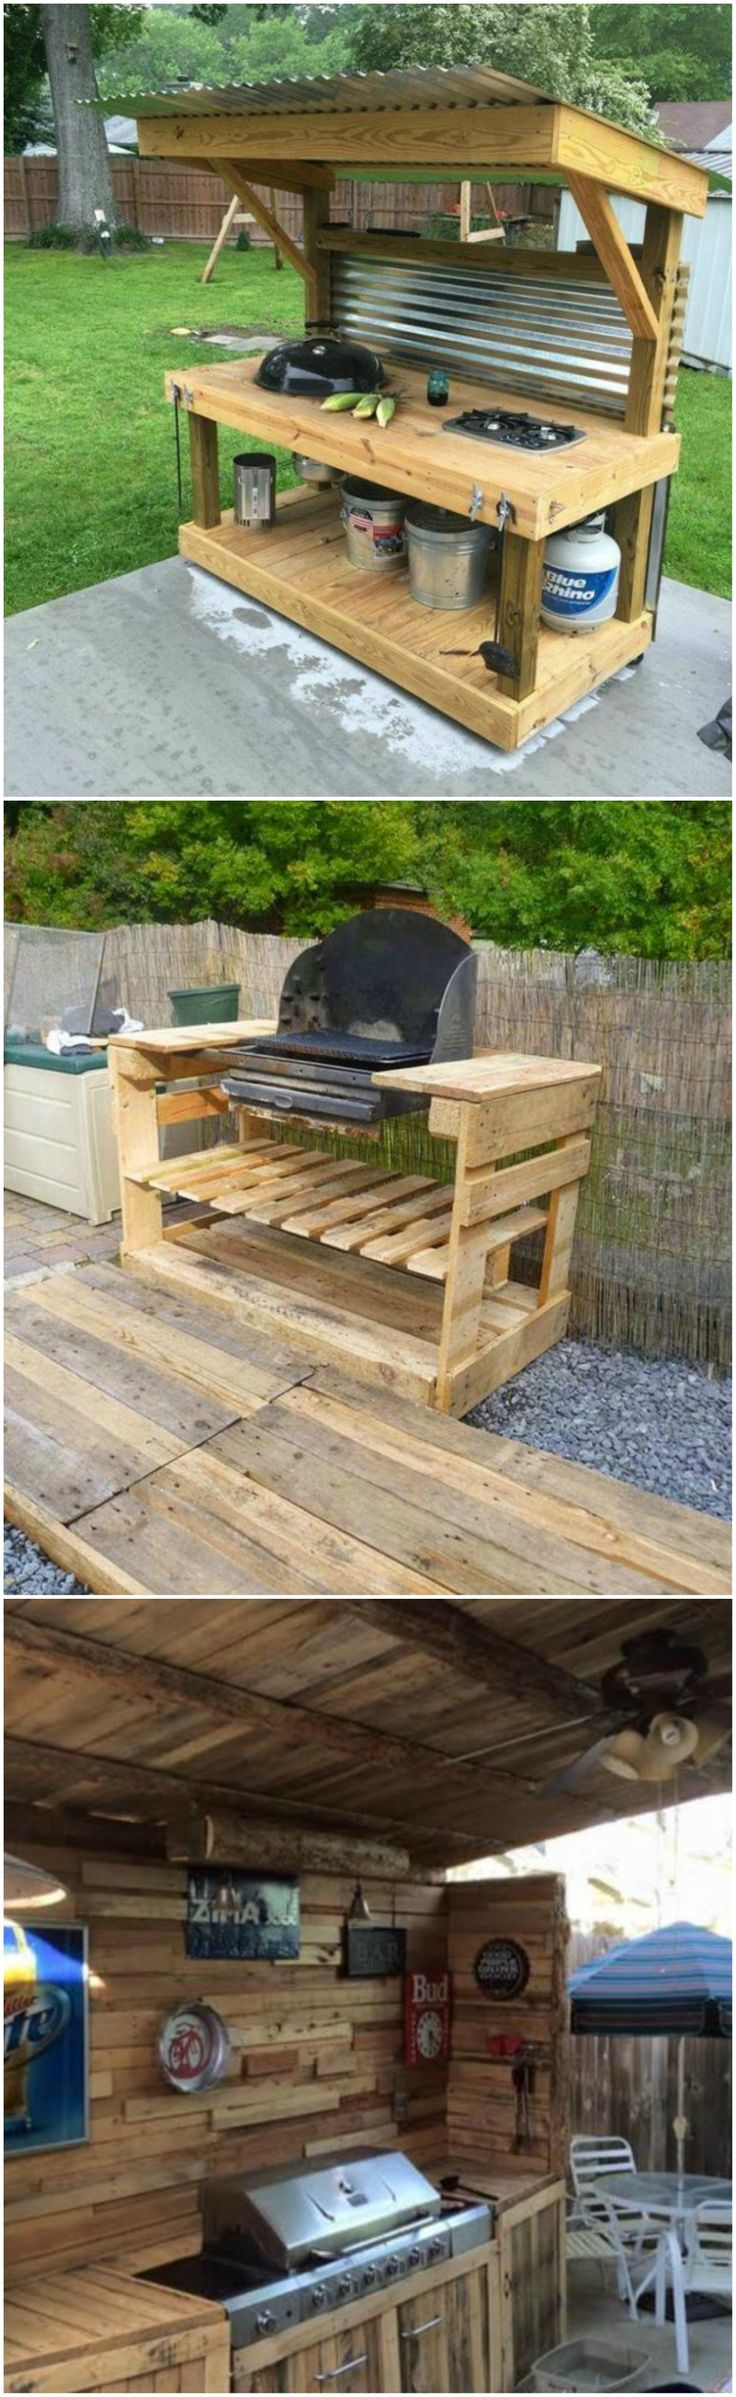 the 25 best outdoor grill area ideas on pinterest grill. Black Bedroom Furniture Sets. Home Design Ideas